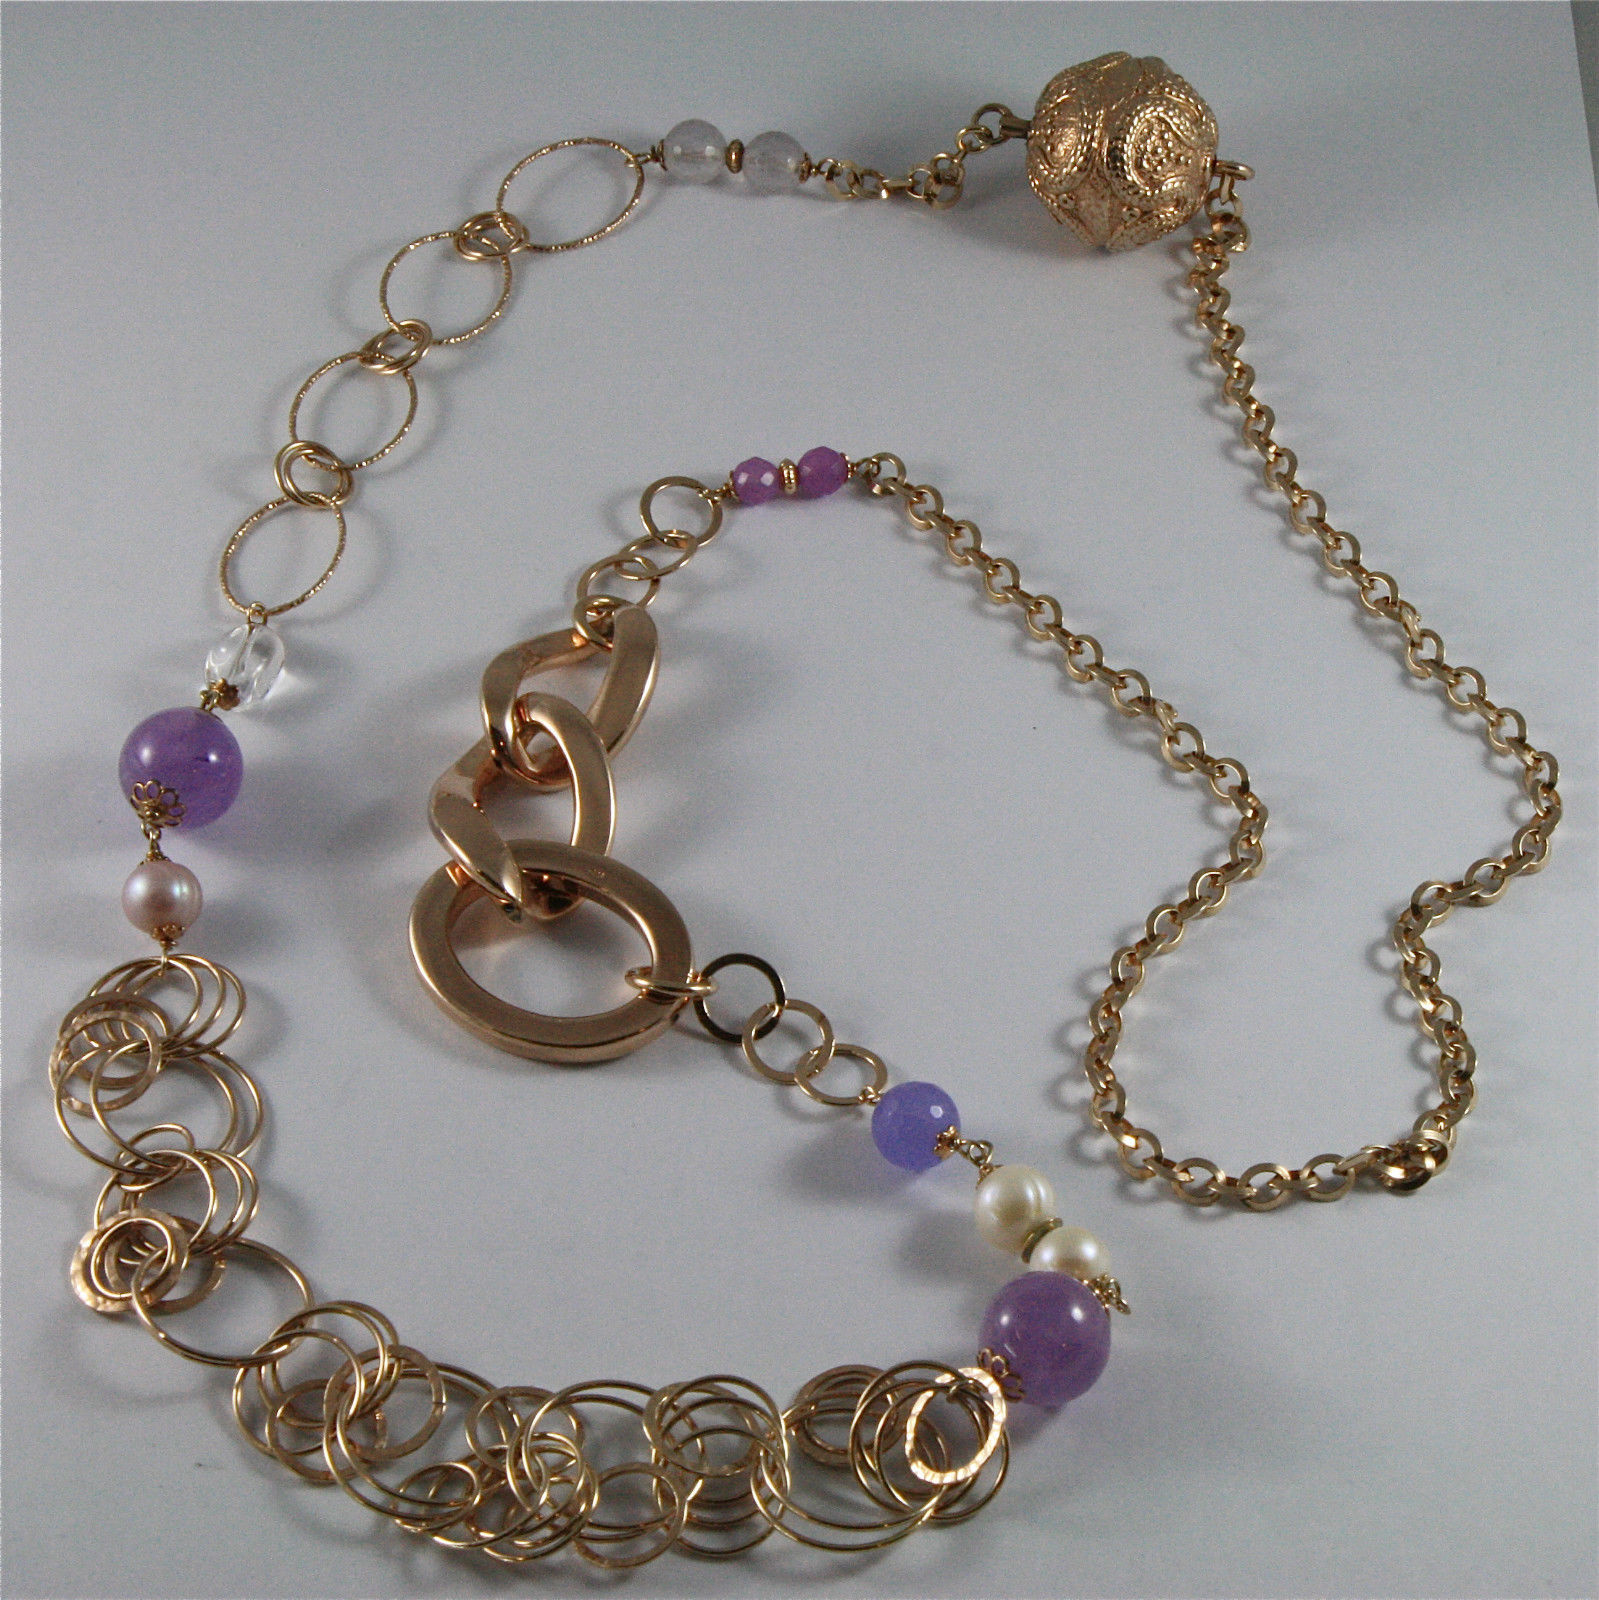 .925 ROSE PLATED NECKLACE 40,55 In, AMETHYST, PEARLS, CRYSTALS, MIXED MESH.